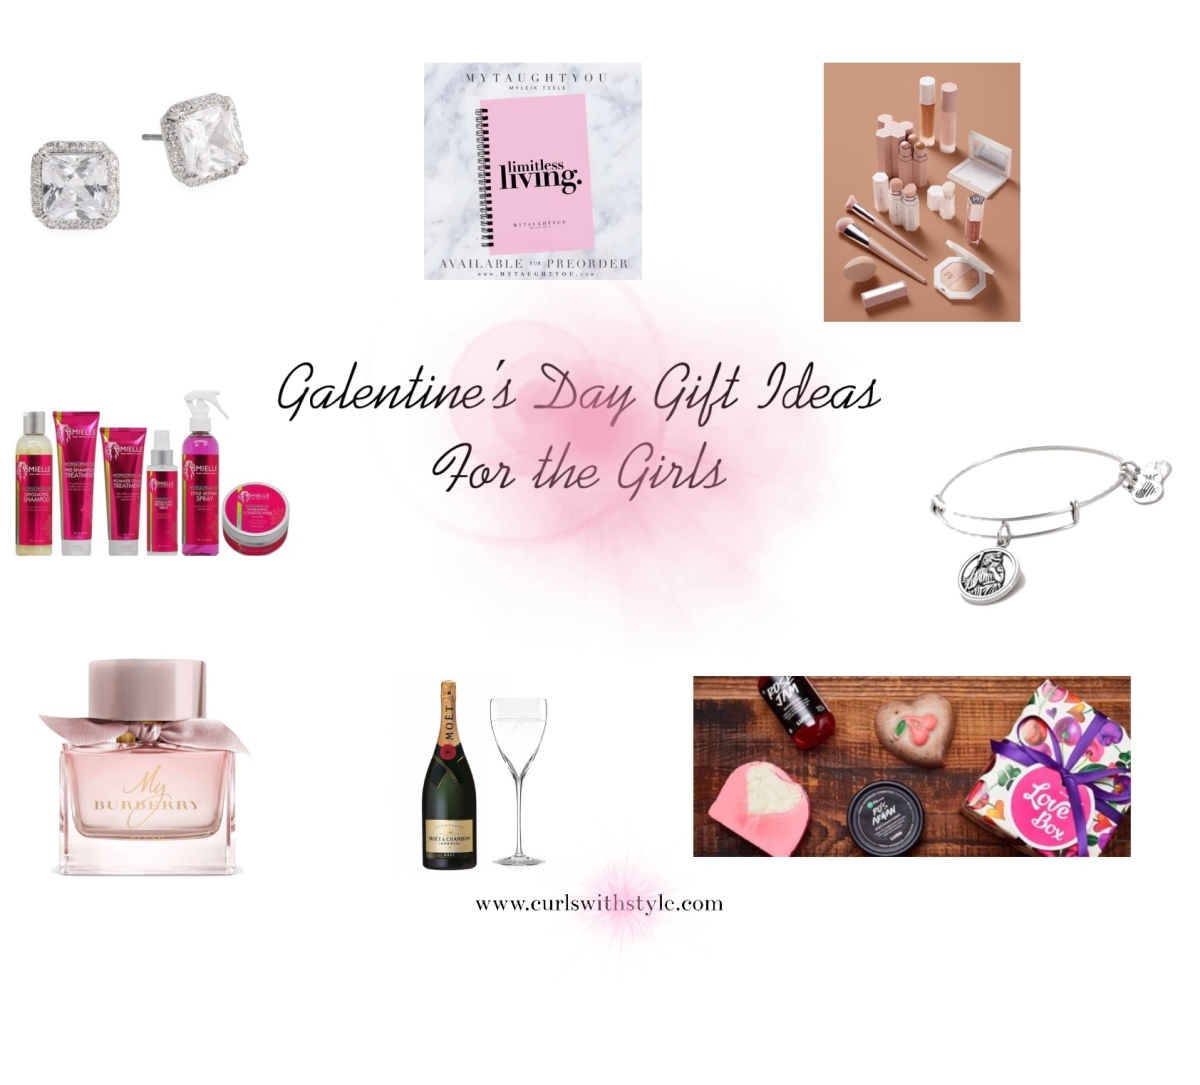 Galentine's Day Gift Ideas for the Besties!